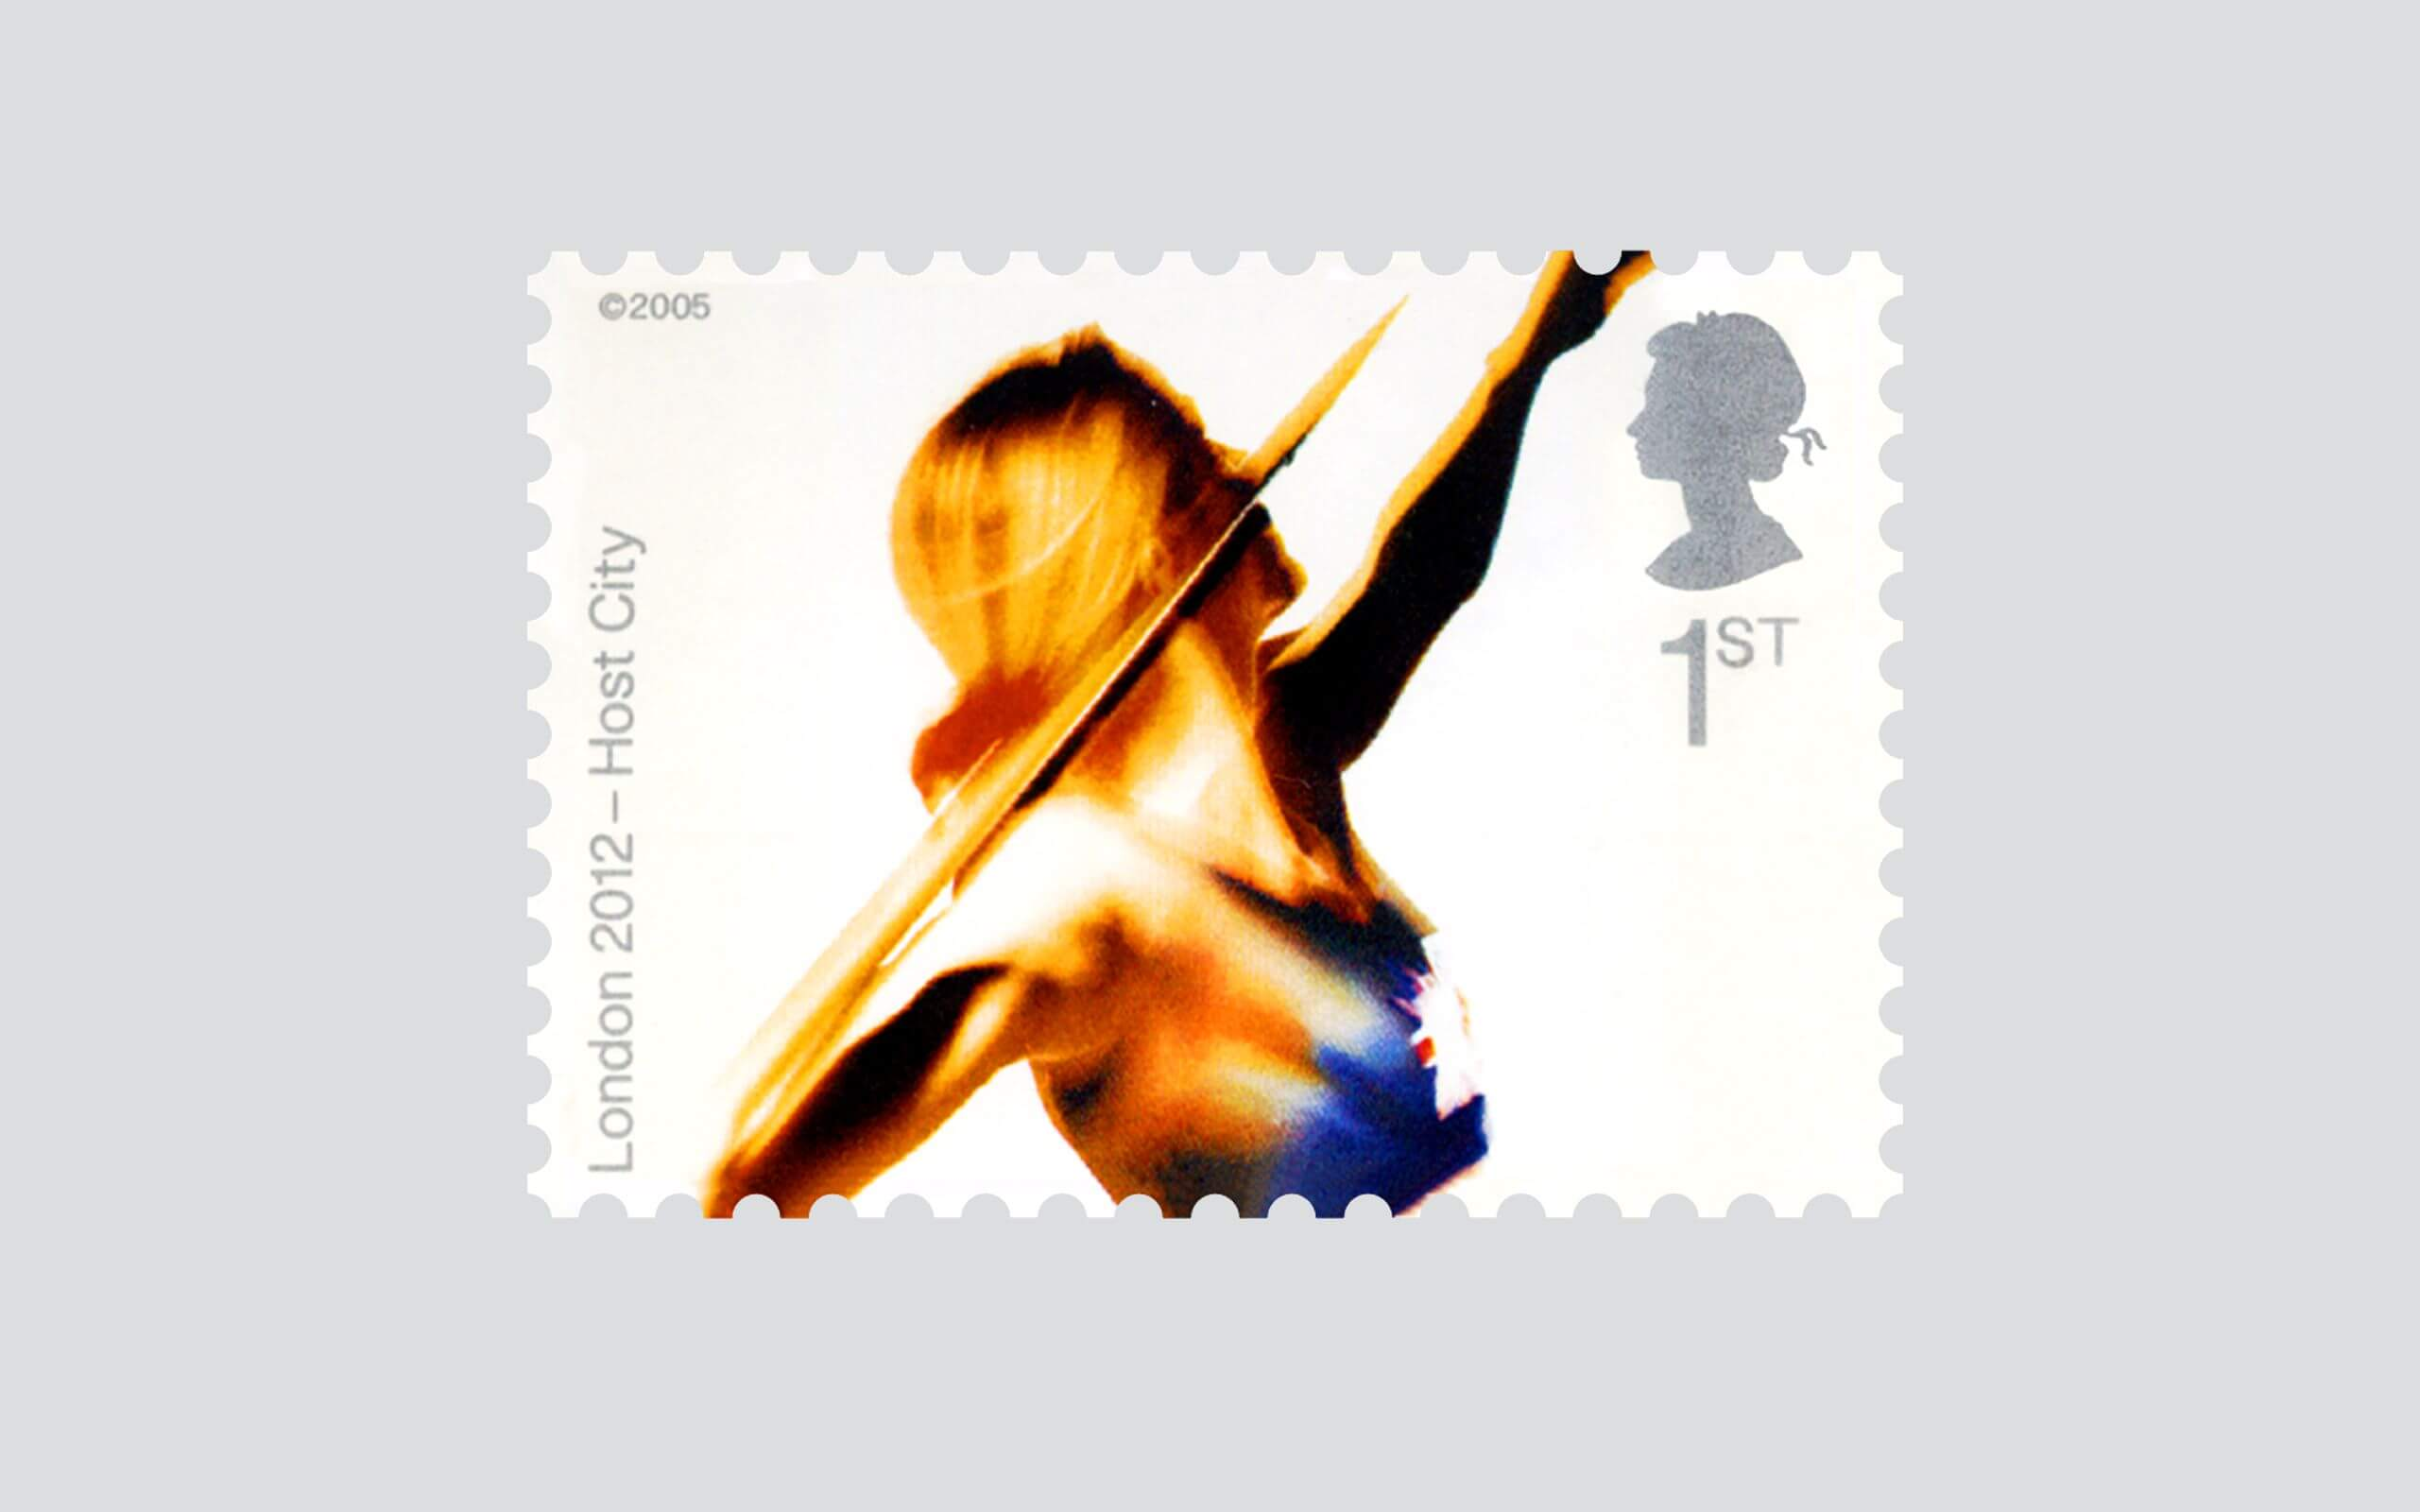 Royal Mail Olympic stamps 2012